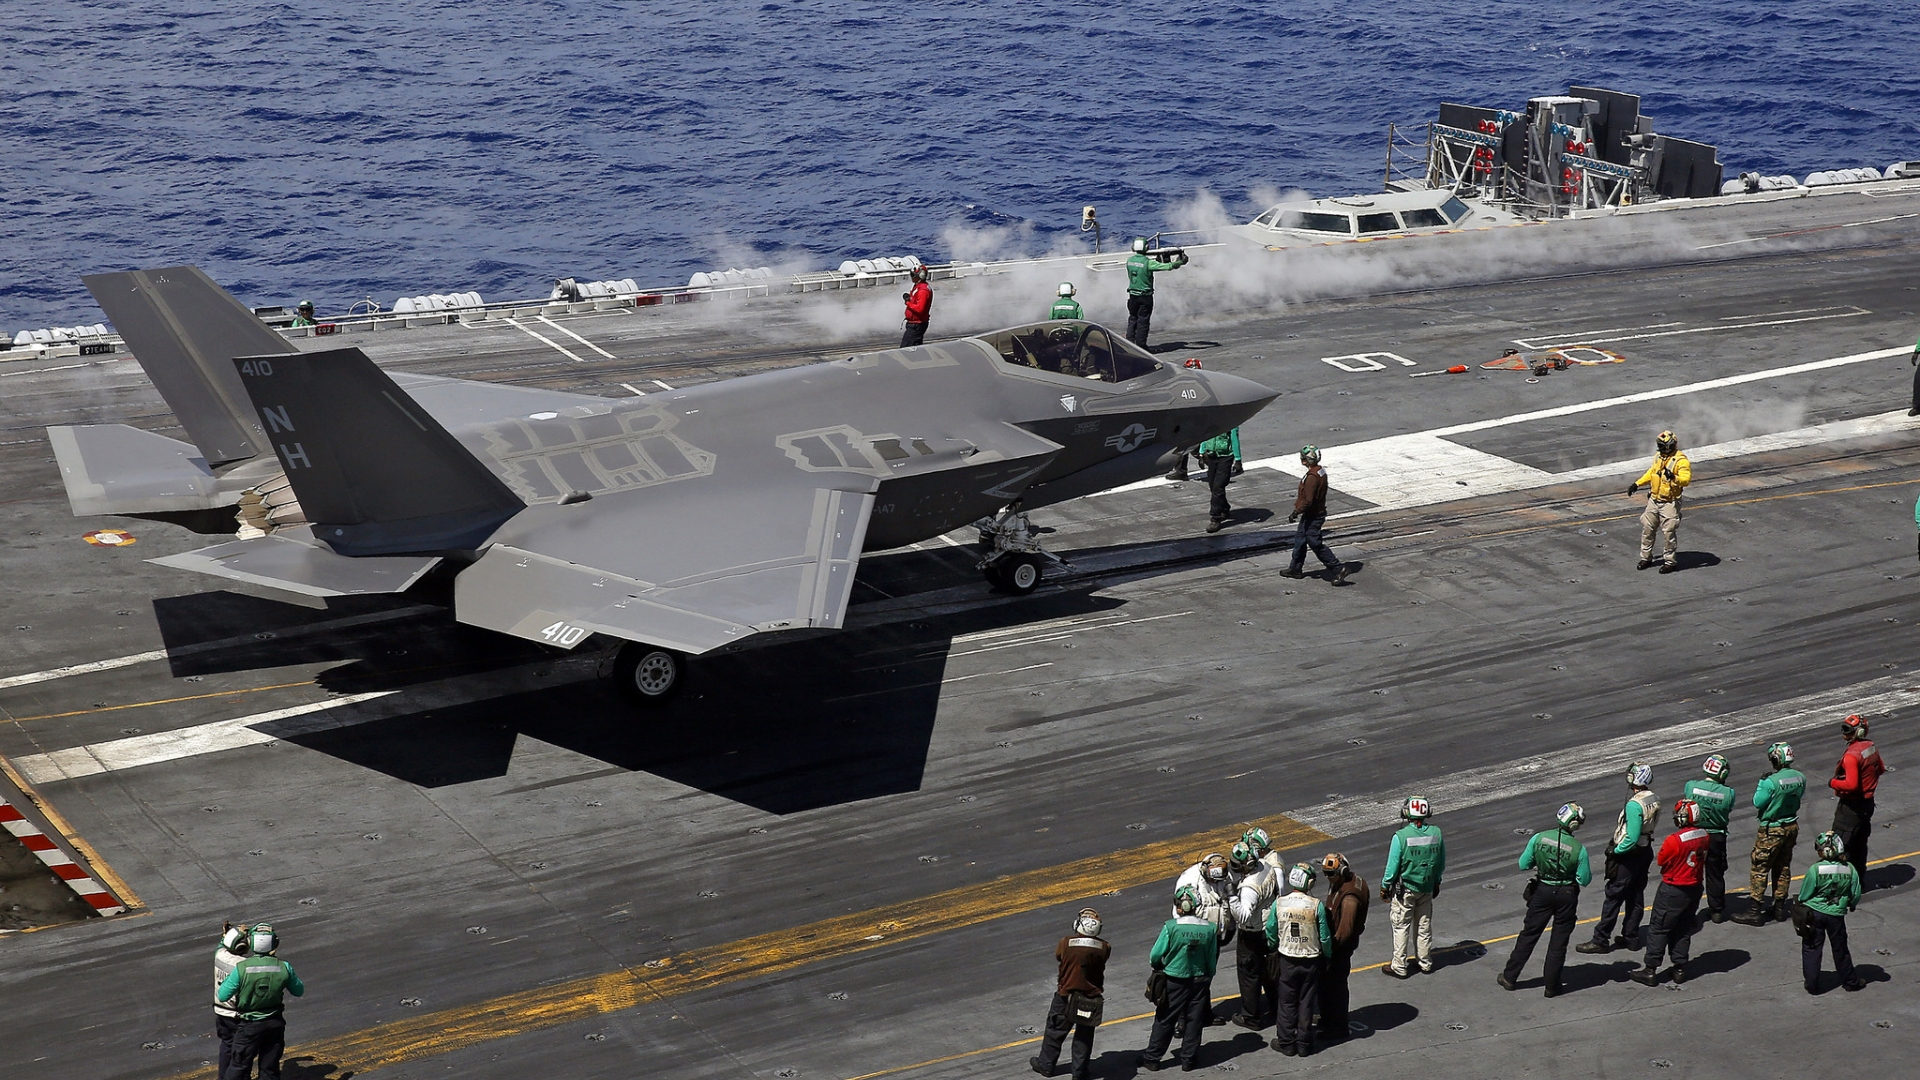 Navy says new stealth jet looks at home on carrier - Daily Press